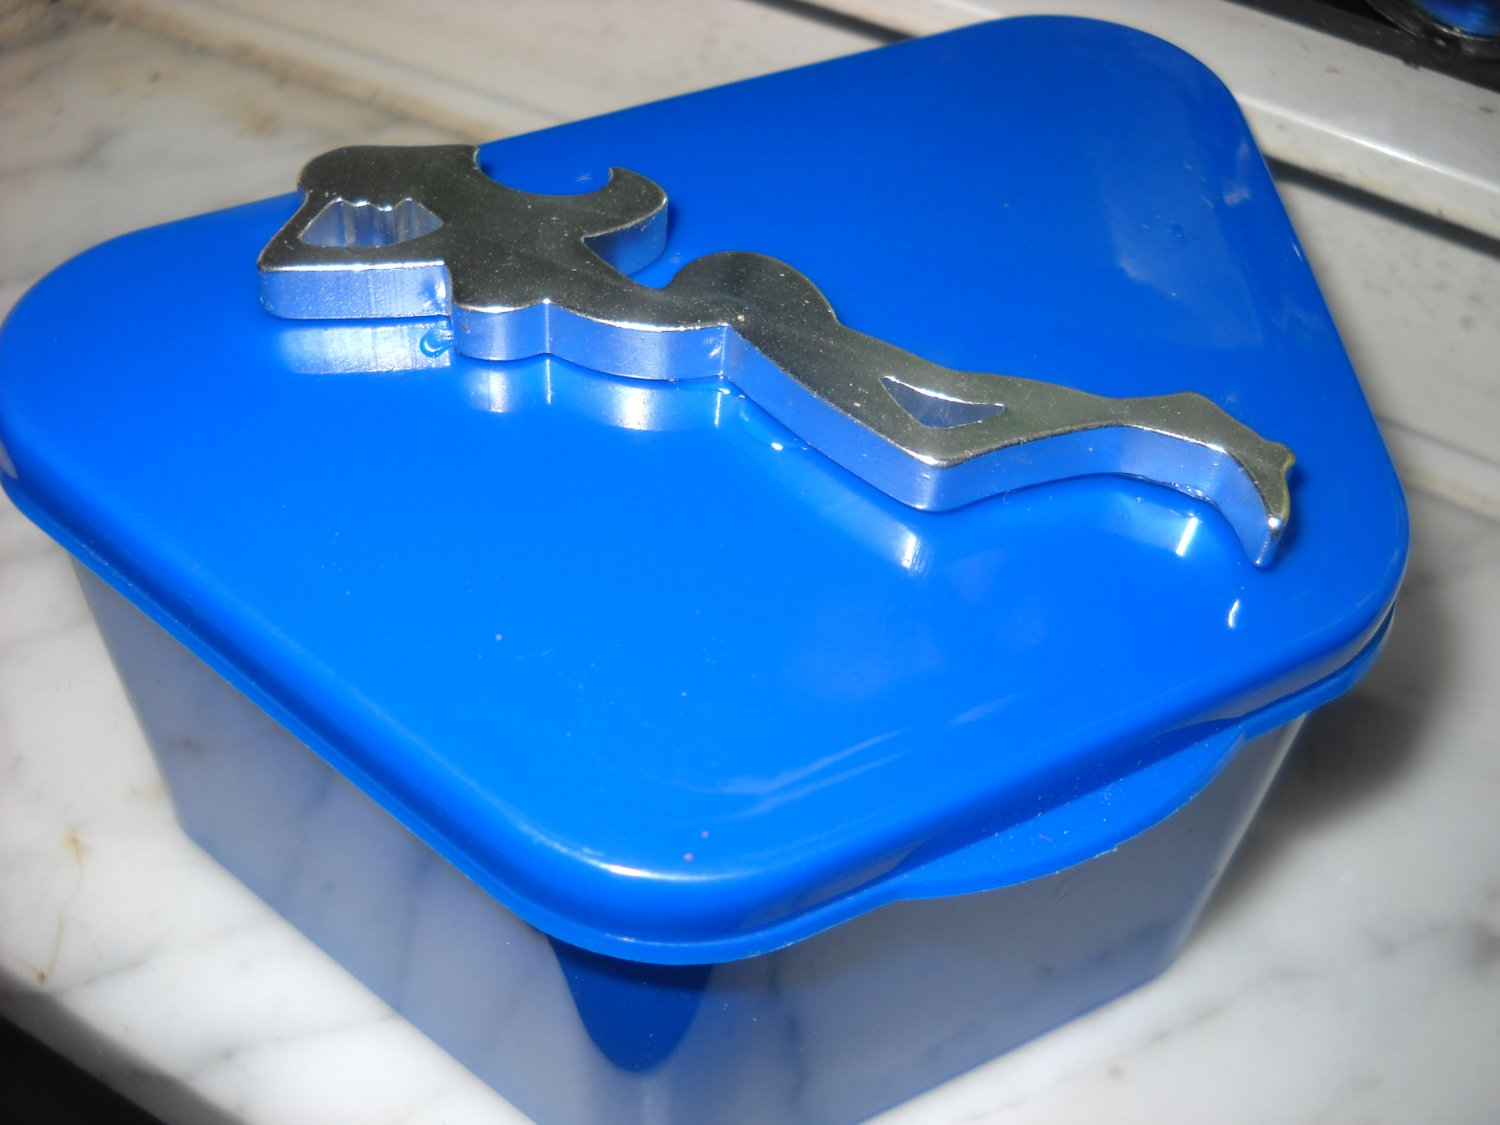 Full Denture Case trucker mens dental storage case Blue w / silver woman silhouette